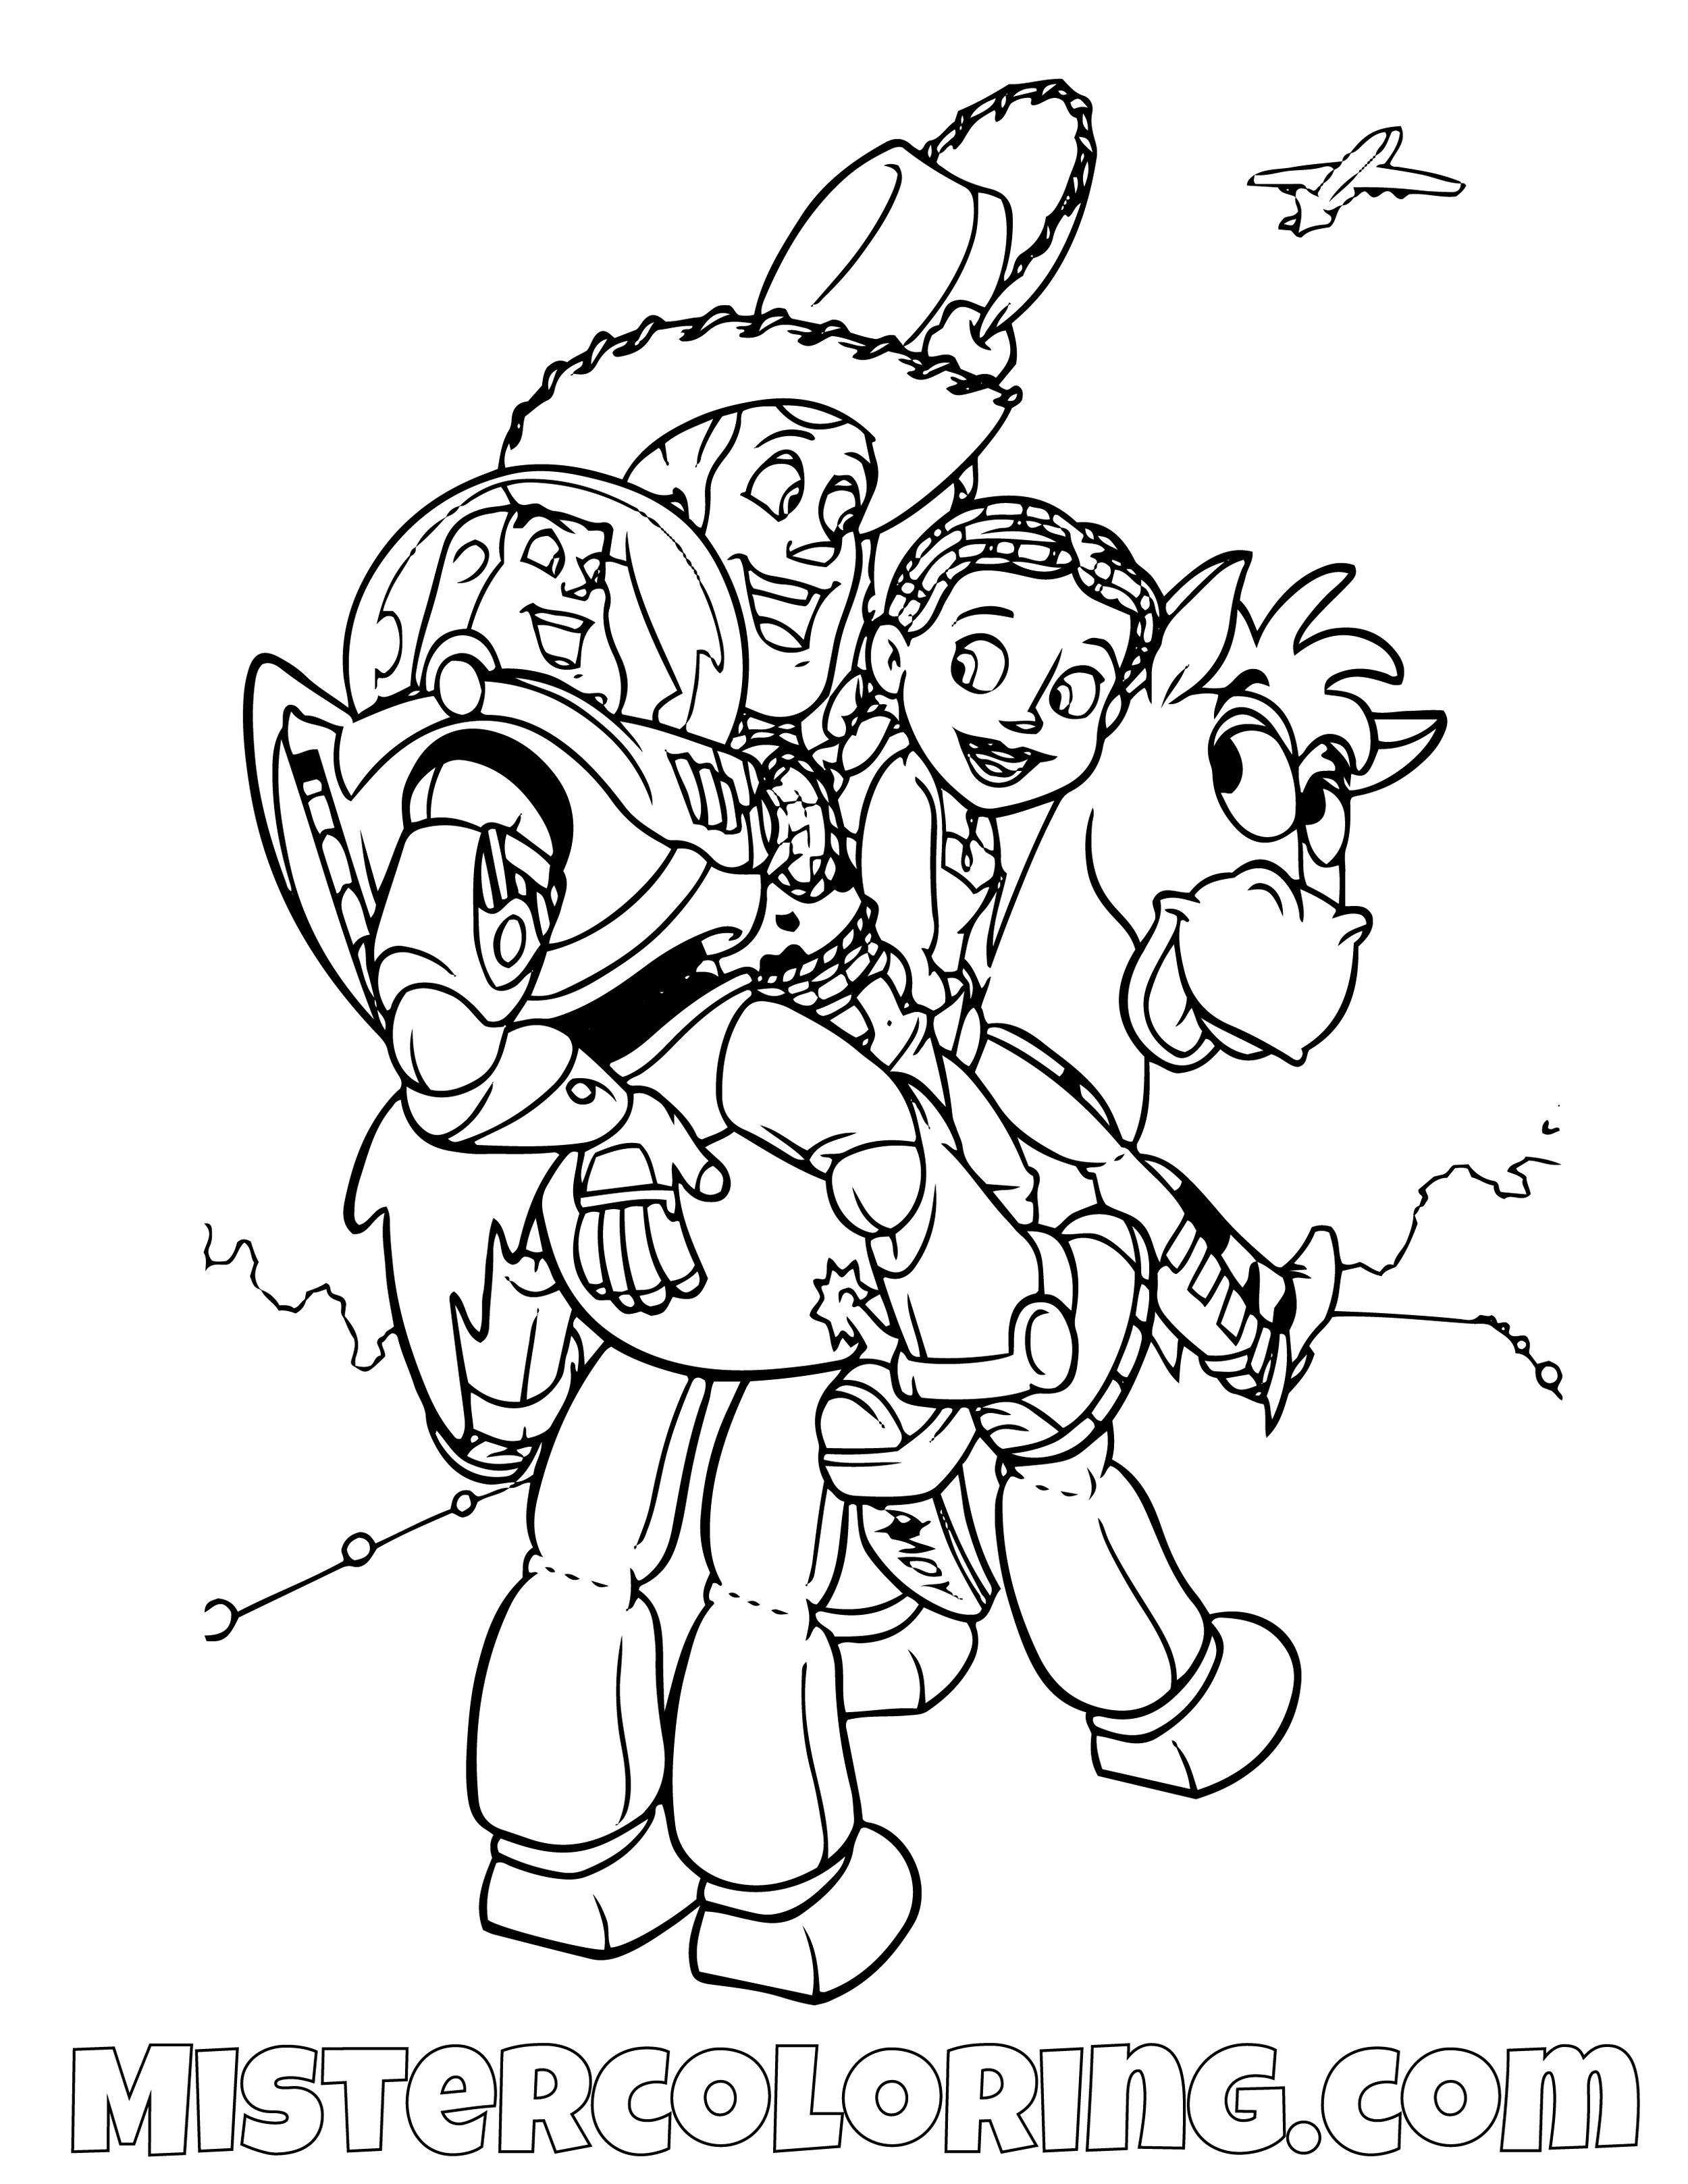 Toy Story Coloring Page For Kids Mister Coloring